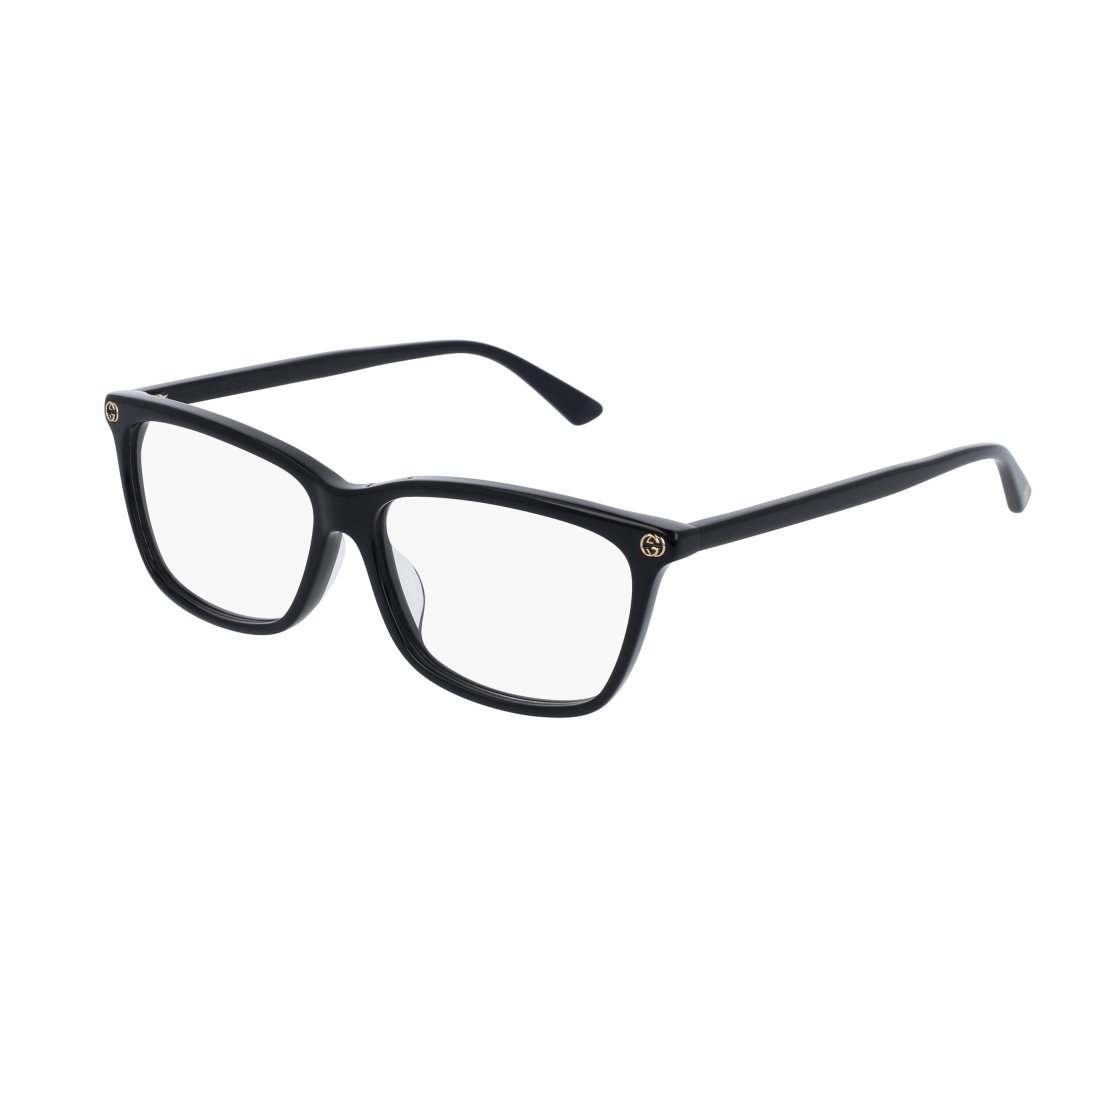 Gucci GG 0042OA 001 Asian Fit Black Plastic Cat-Eye Eyeglasses 55mm